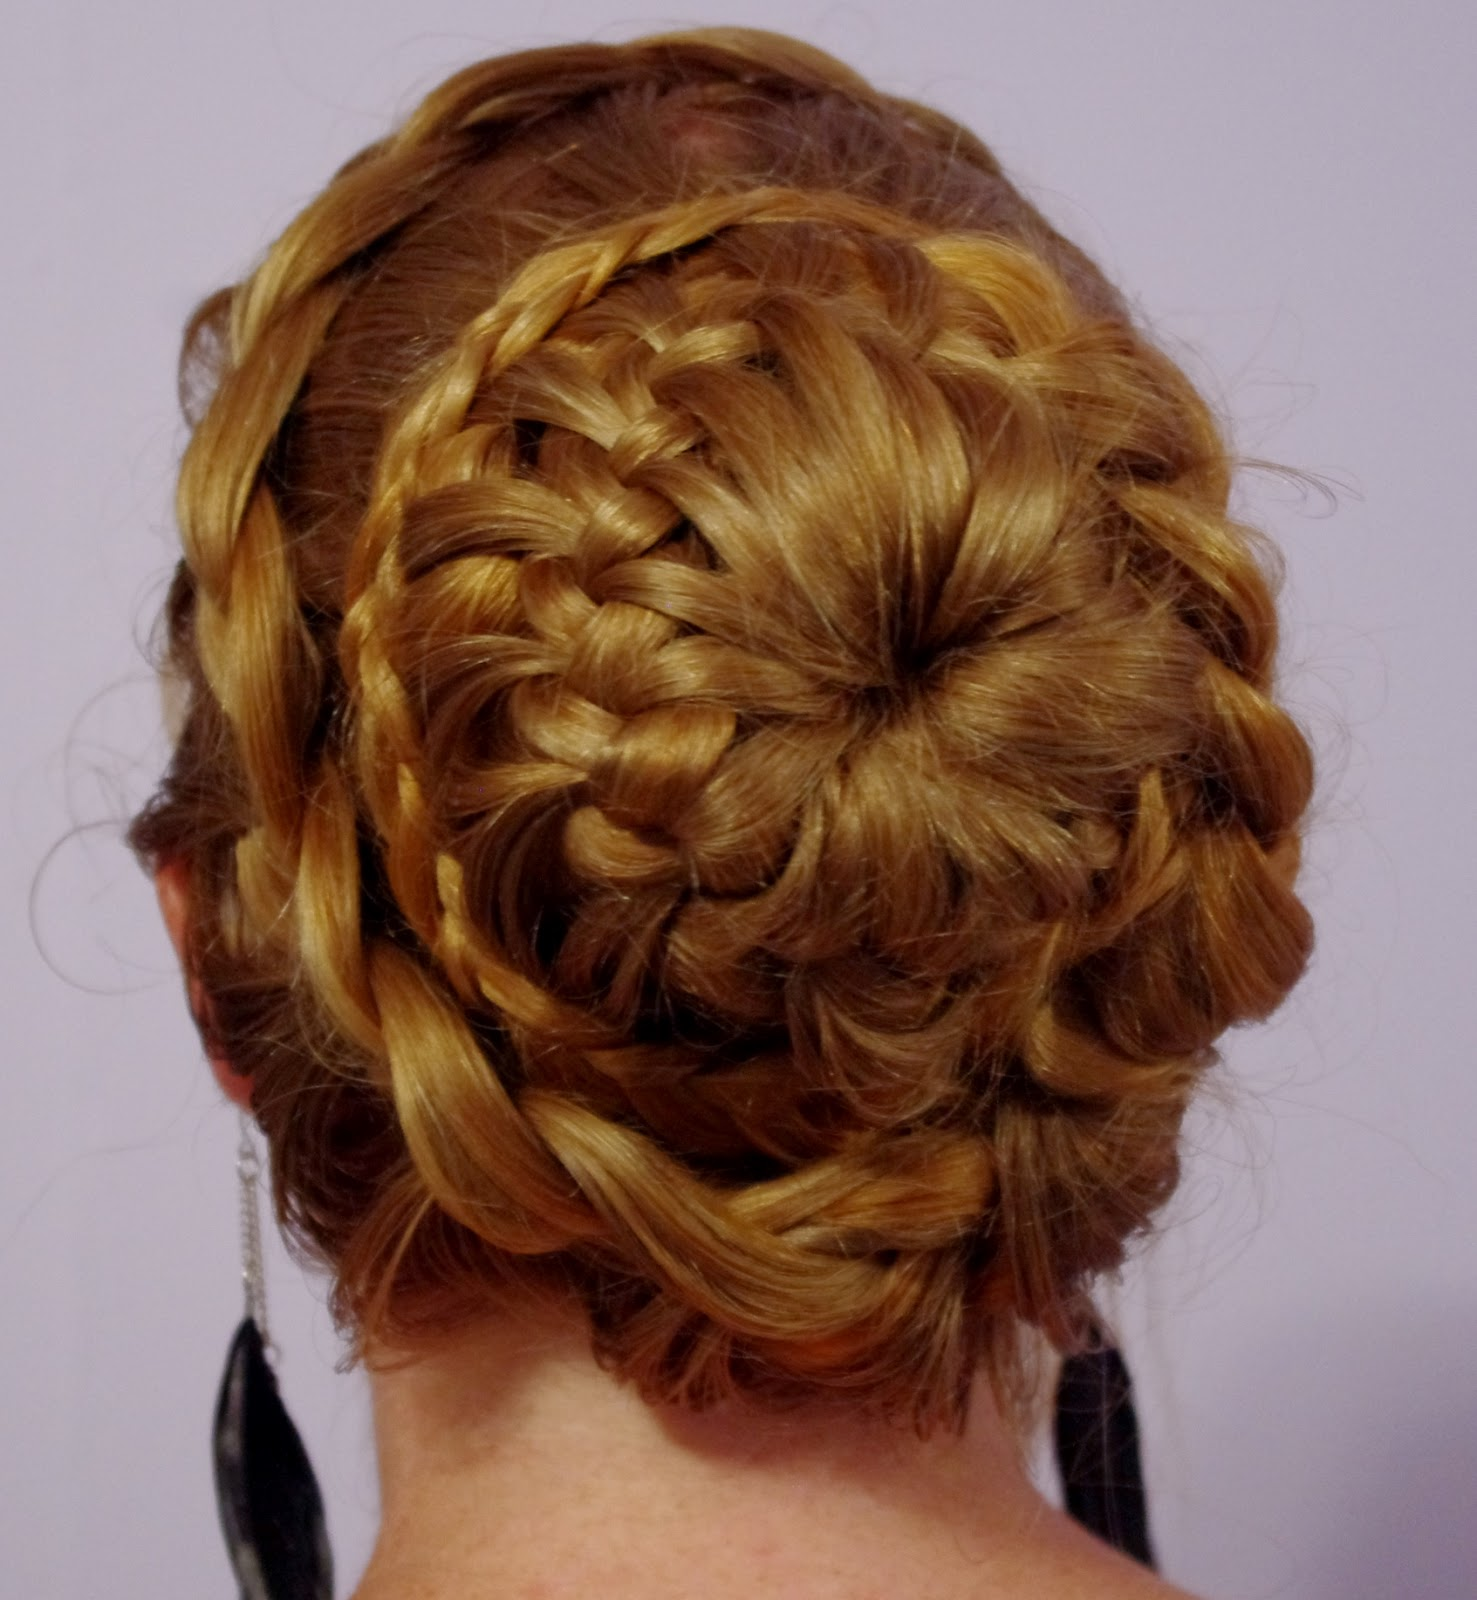 Braid Hairstyles: Braids & Hairstyles For Super Long Hair: Fancy Braided Bun